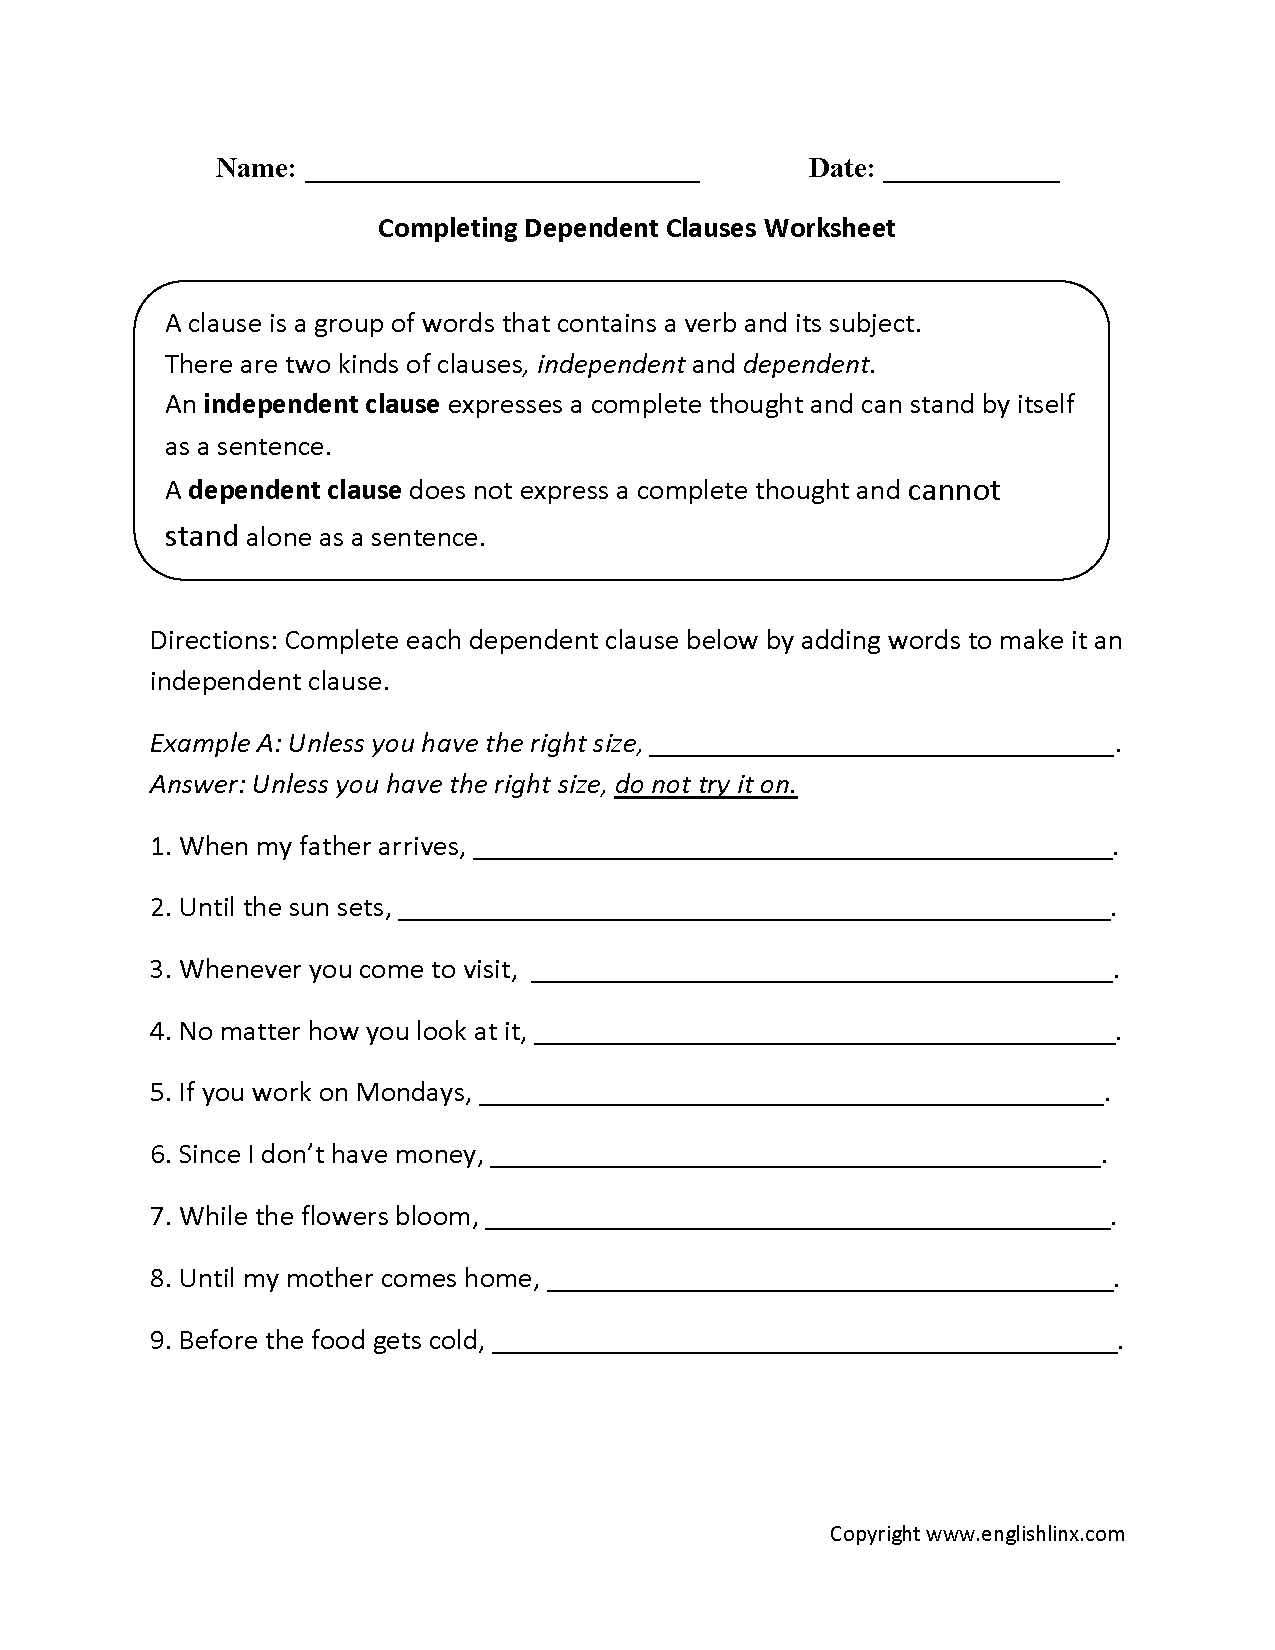 Worksheets Independent And Dependent Clauses Worksheets englishlinx com clauses worksheets completing dependent worksheet